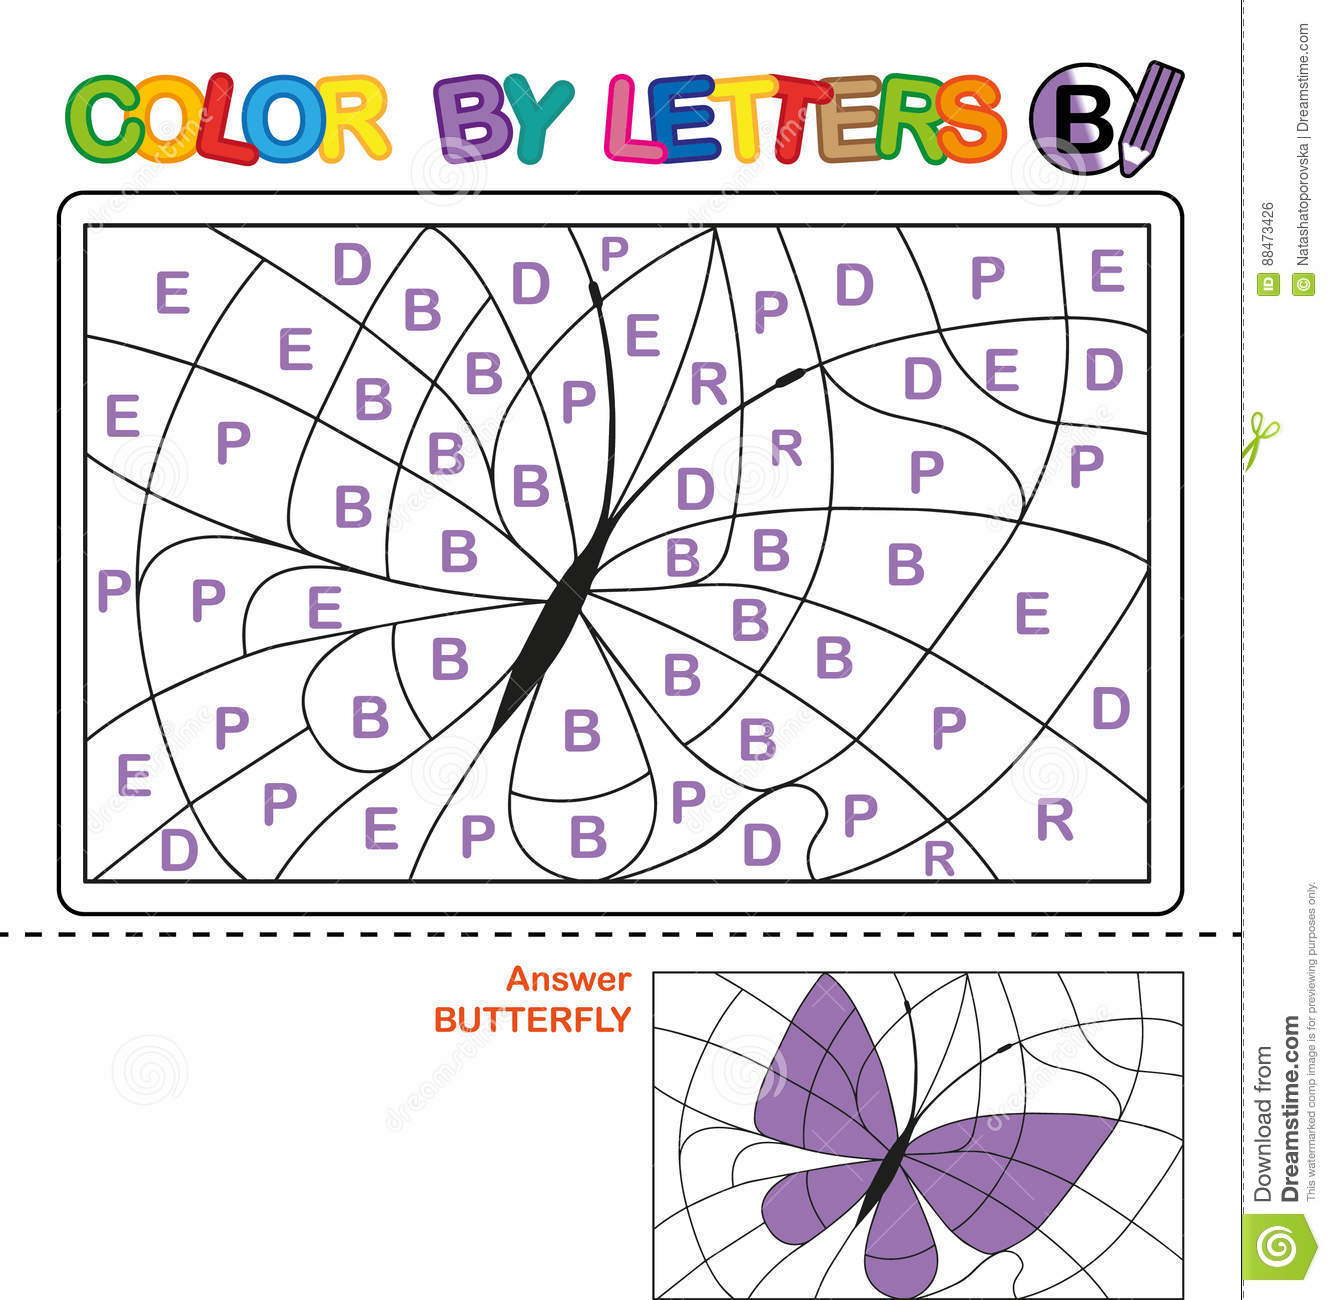 ABC Coloring Book For Kids Learn Capital Letters Of The English Alphabet Designers Also Selected These Stock Illustrations Color By Letter